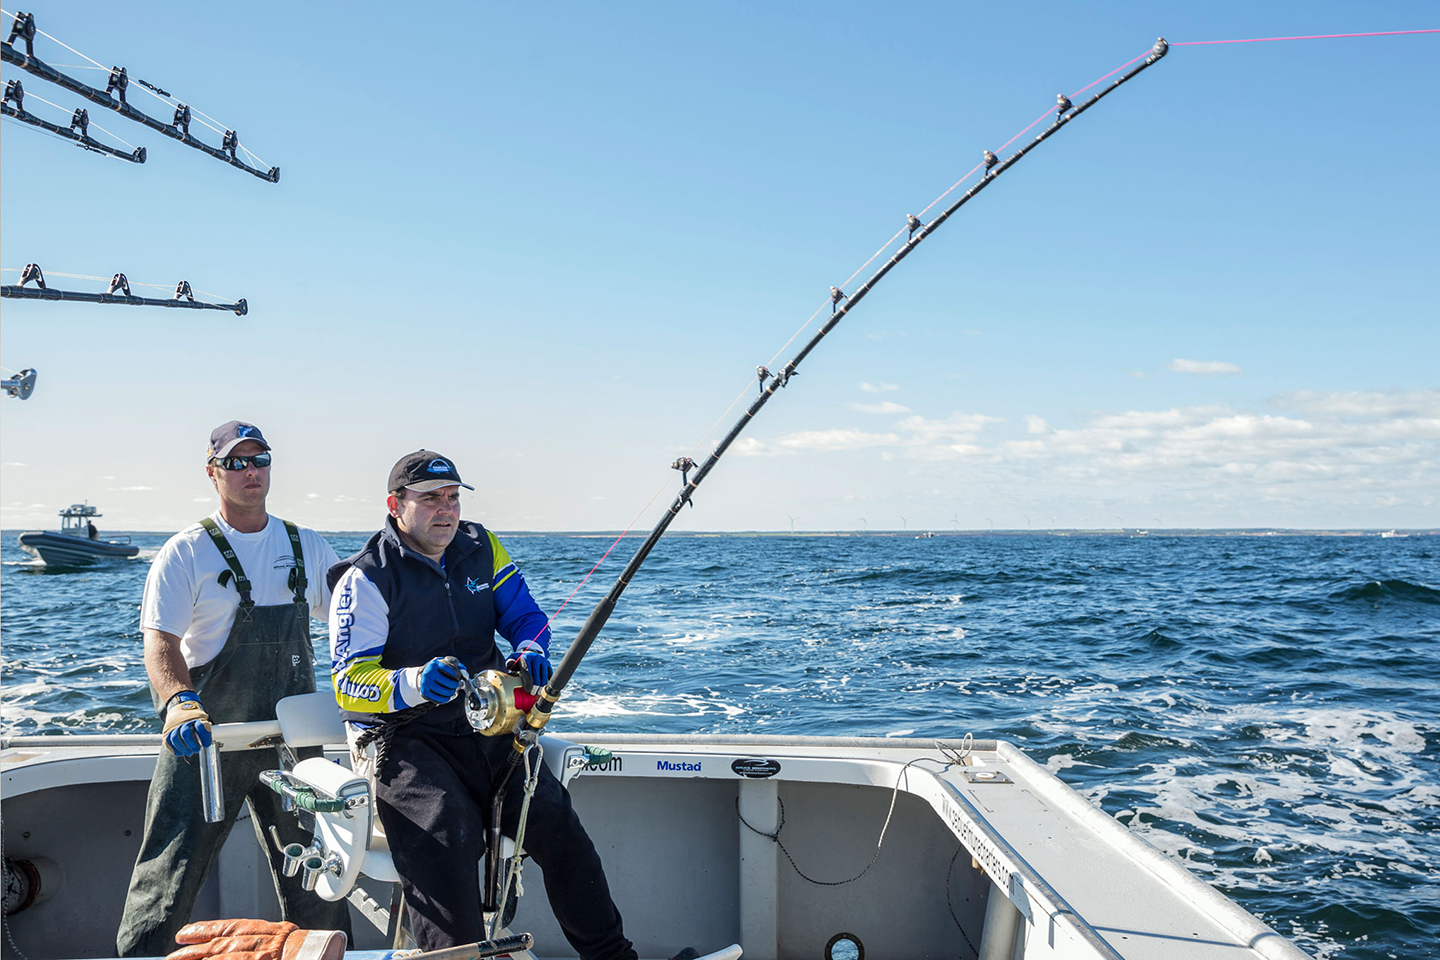 An anglers fighting a huge fish with a fighting chair and heavy tackle, with a crew member helping them behind